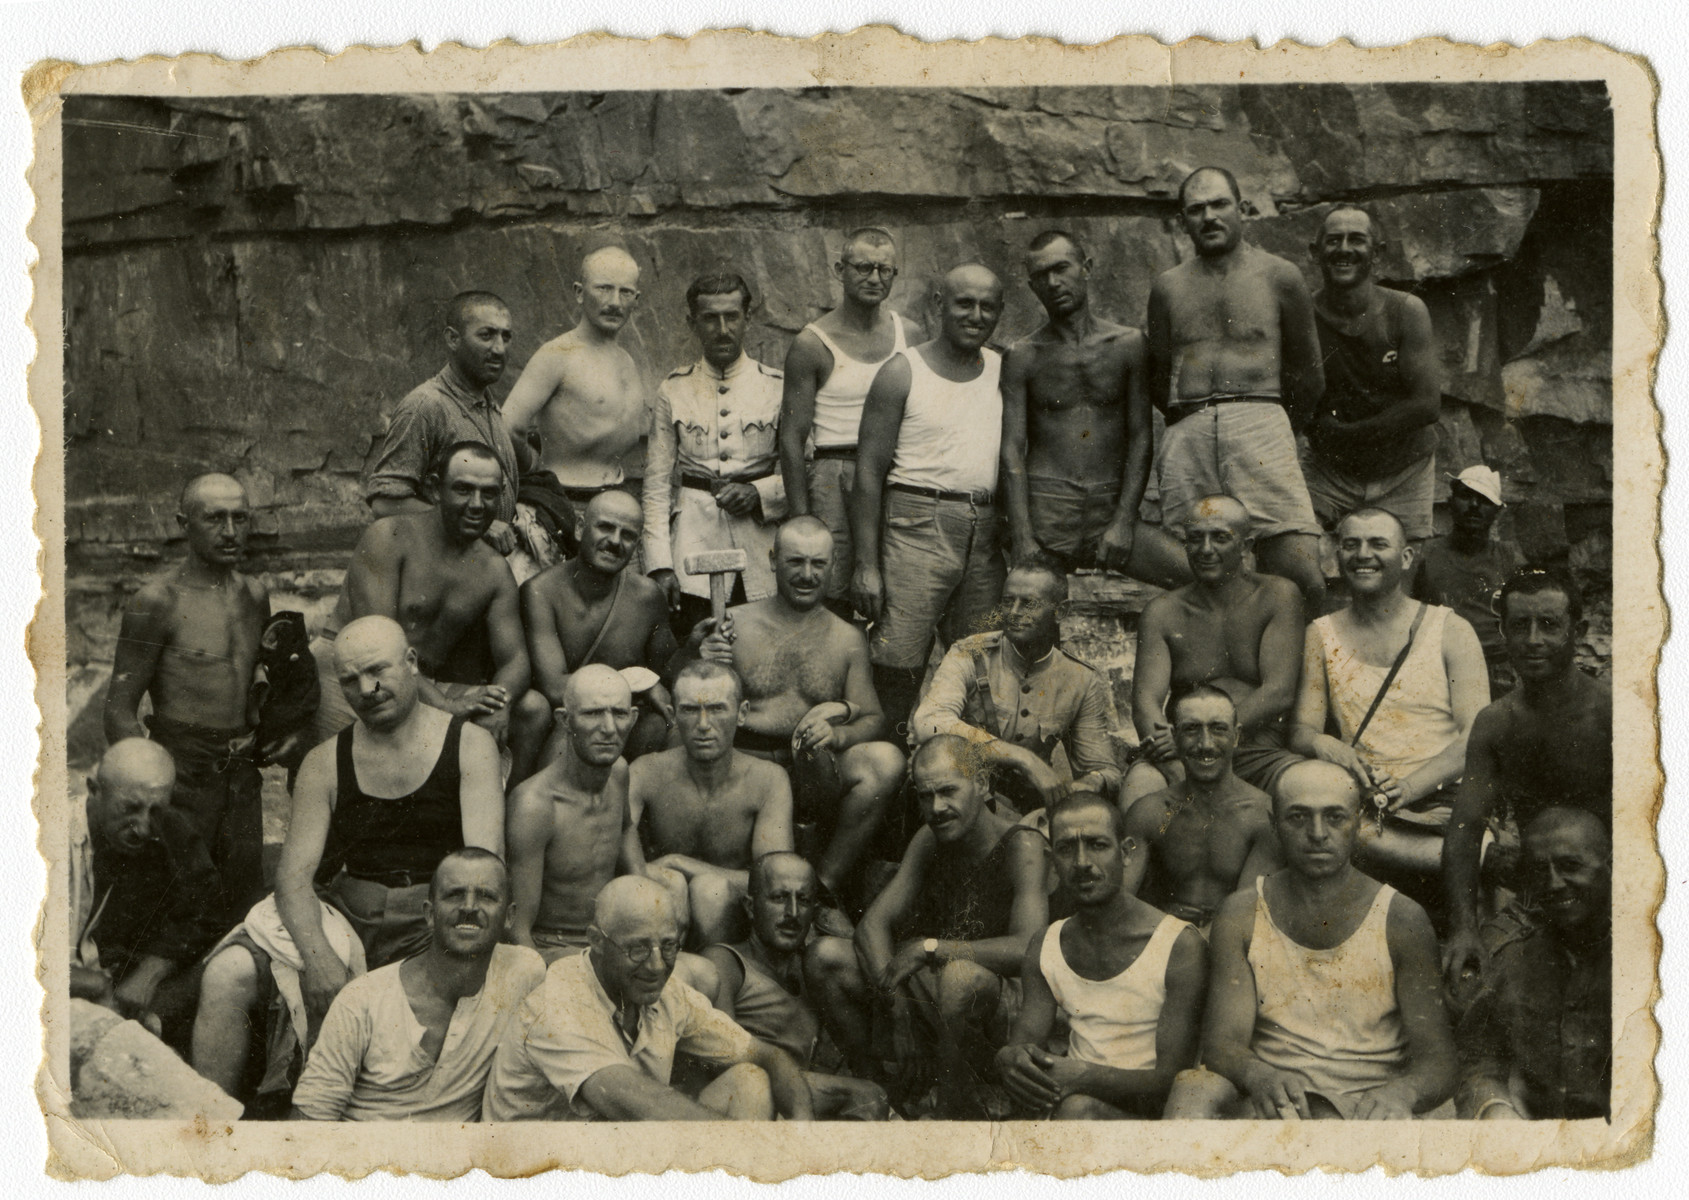 Group portrait of Bulgarian Jews in a forced labor brigade in Bov.